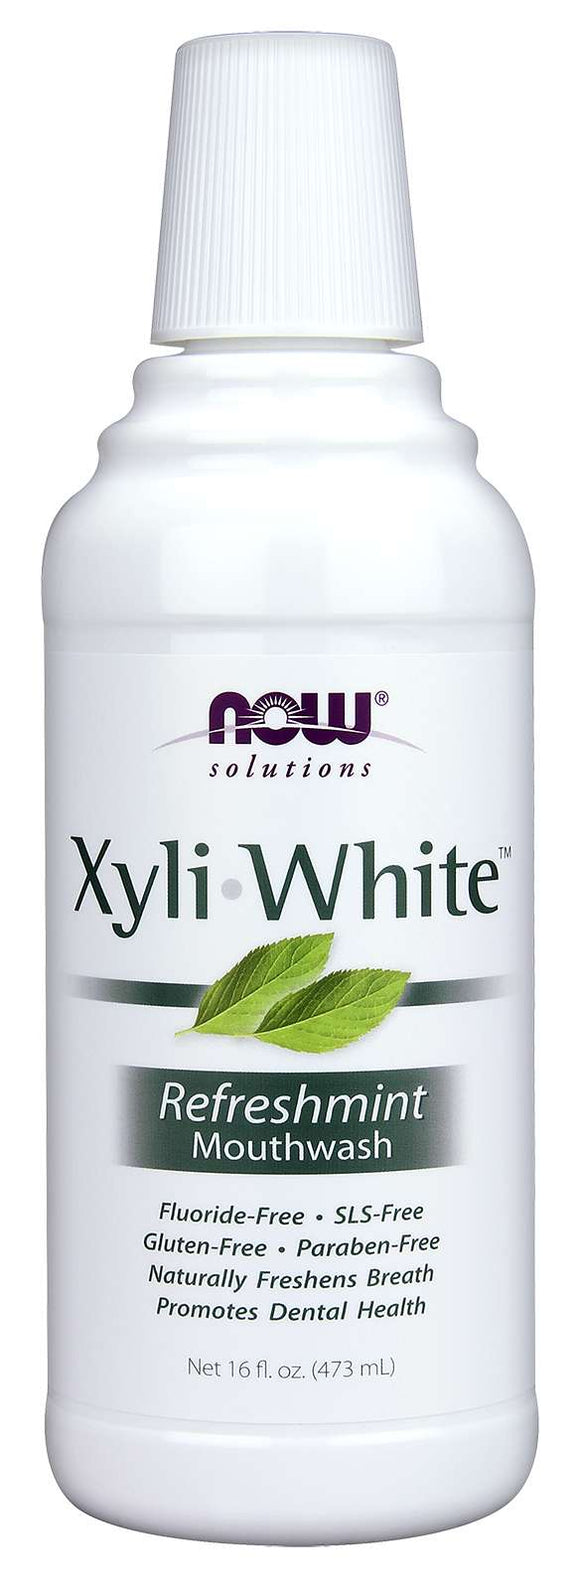 Xyliwhite Mint Mouthwash 473mL